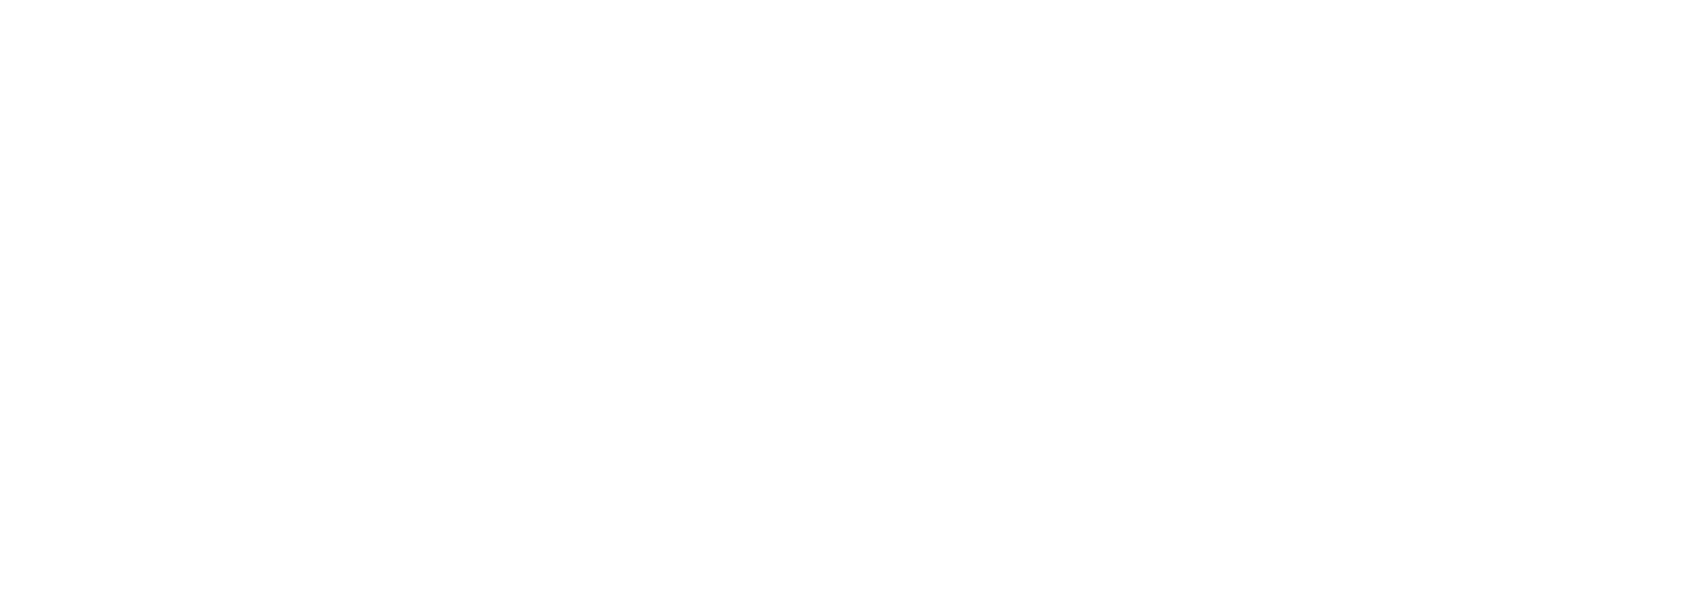 B2B Marketing & Sales Operations for B2B tech companies